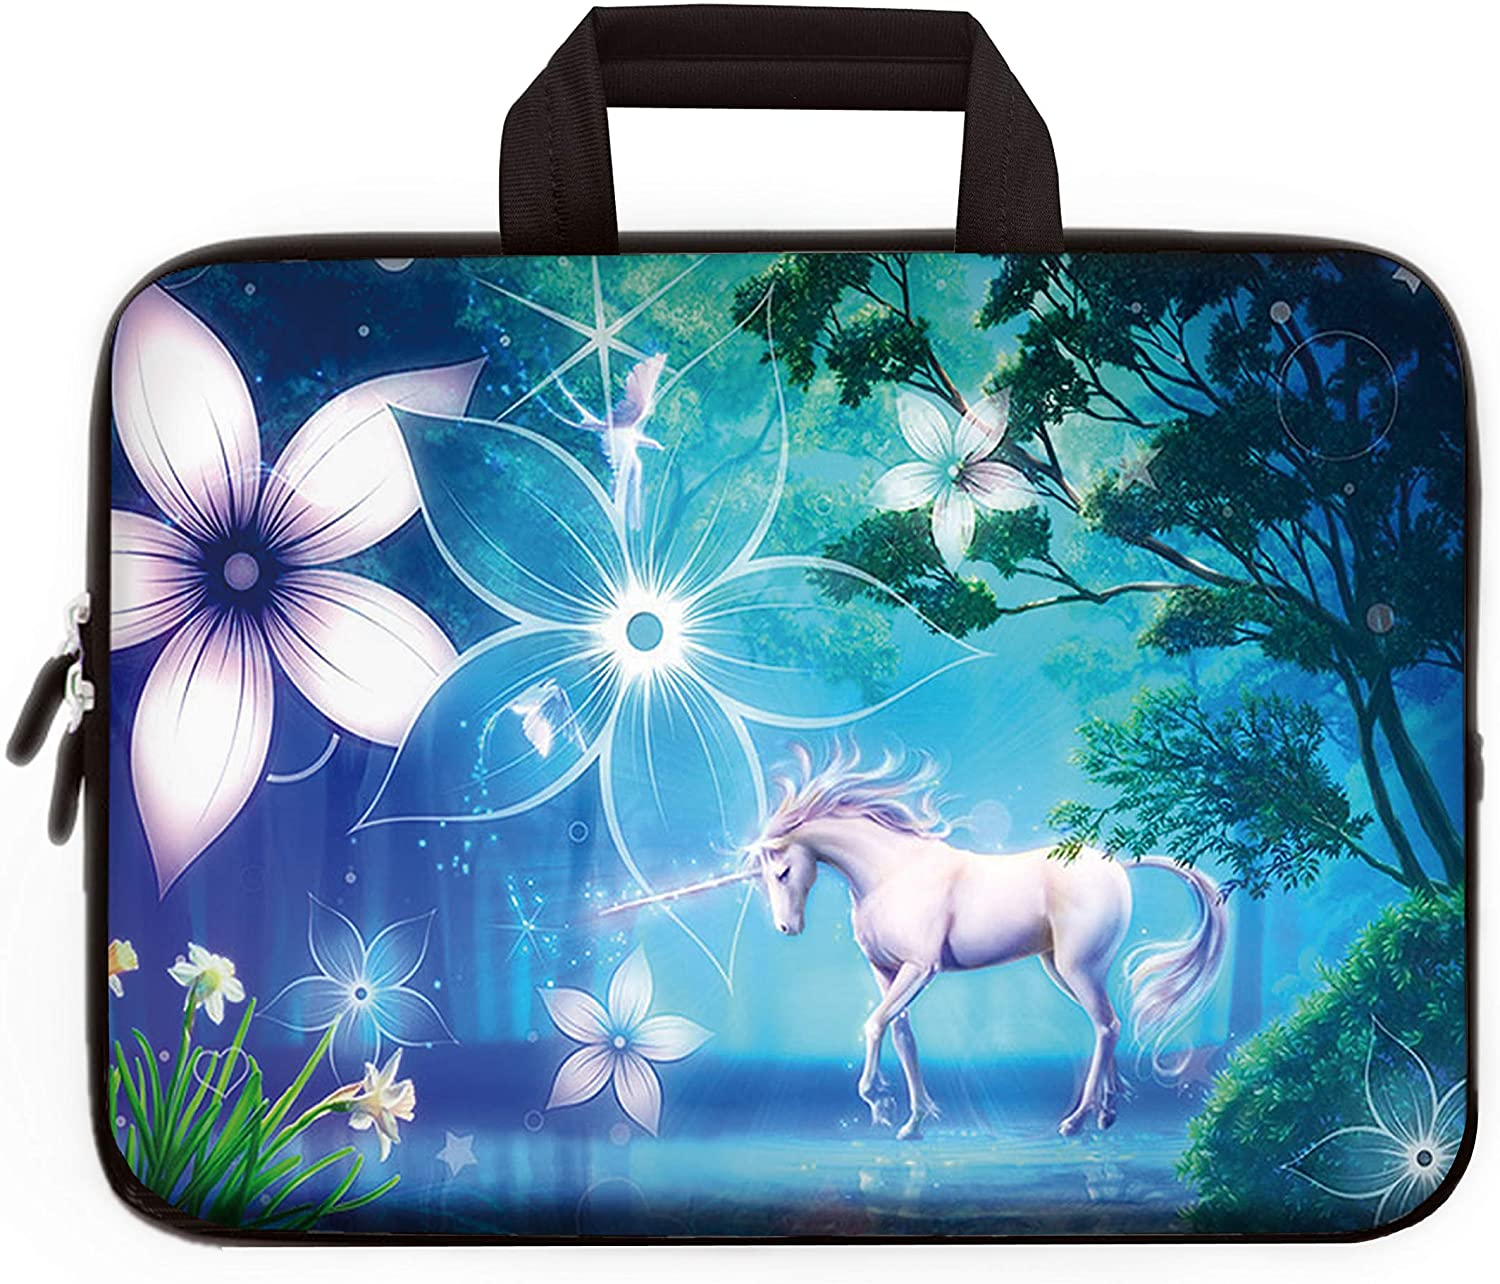 """14 14.1"""" 14.2"""" 15"""" 15.4"""" 15.6"""" inch Inch Laptop Sleeve Case Protective Bag with Outside Handle,Ultrabook Notebook Carrying Case Handbag Compatible With Dell Toshiba HP Chromebook"""